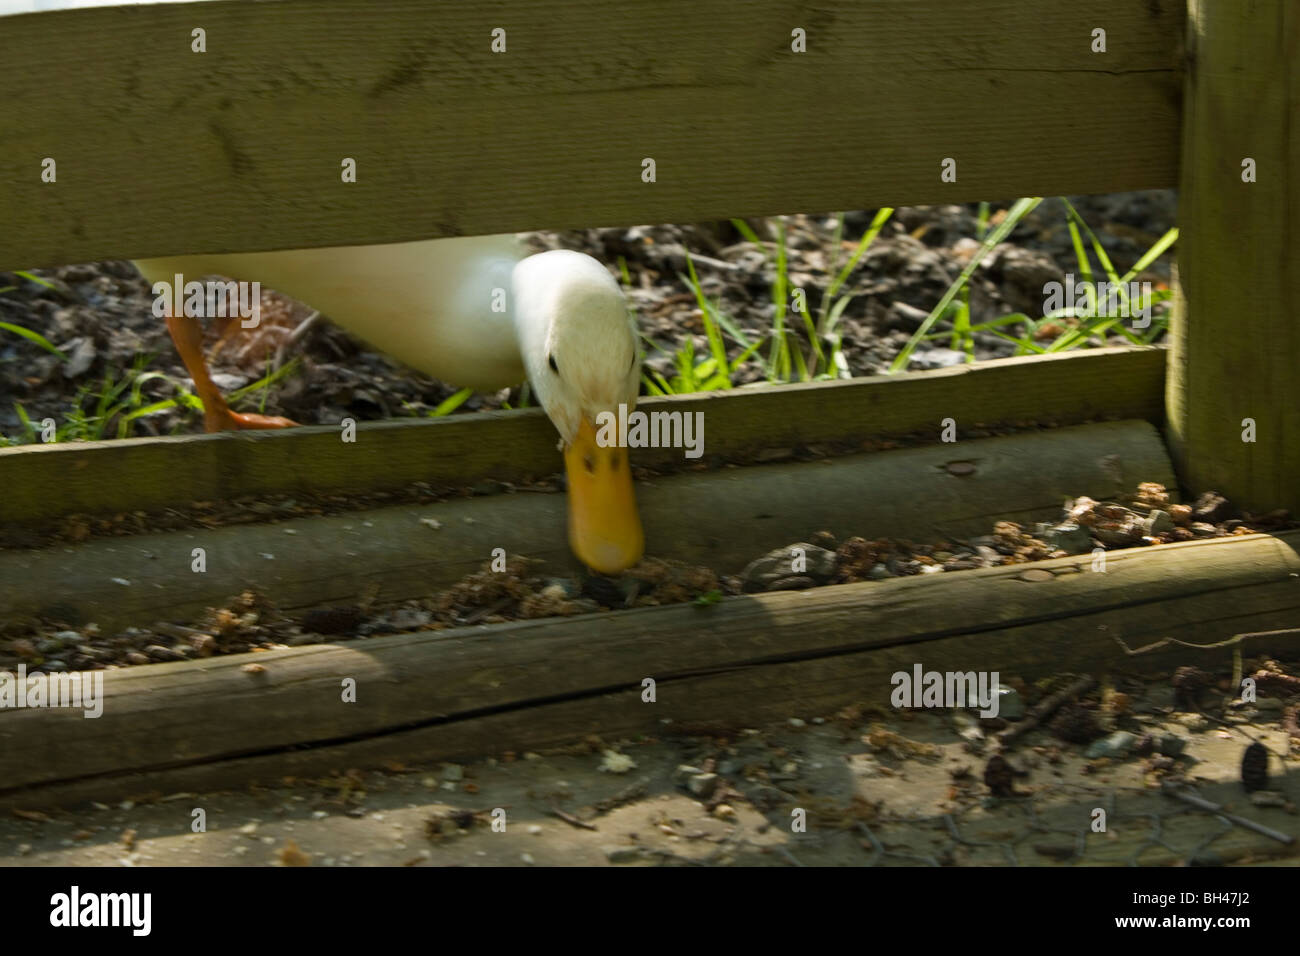 White duck looking through fence in spring. - Stock Image